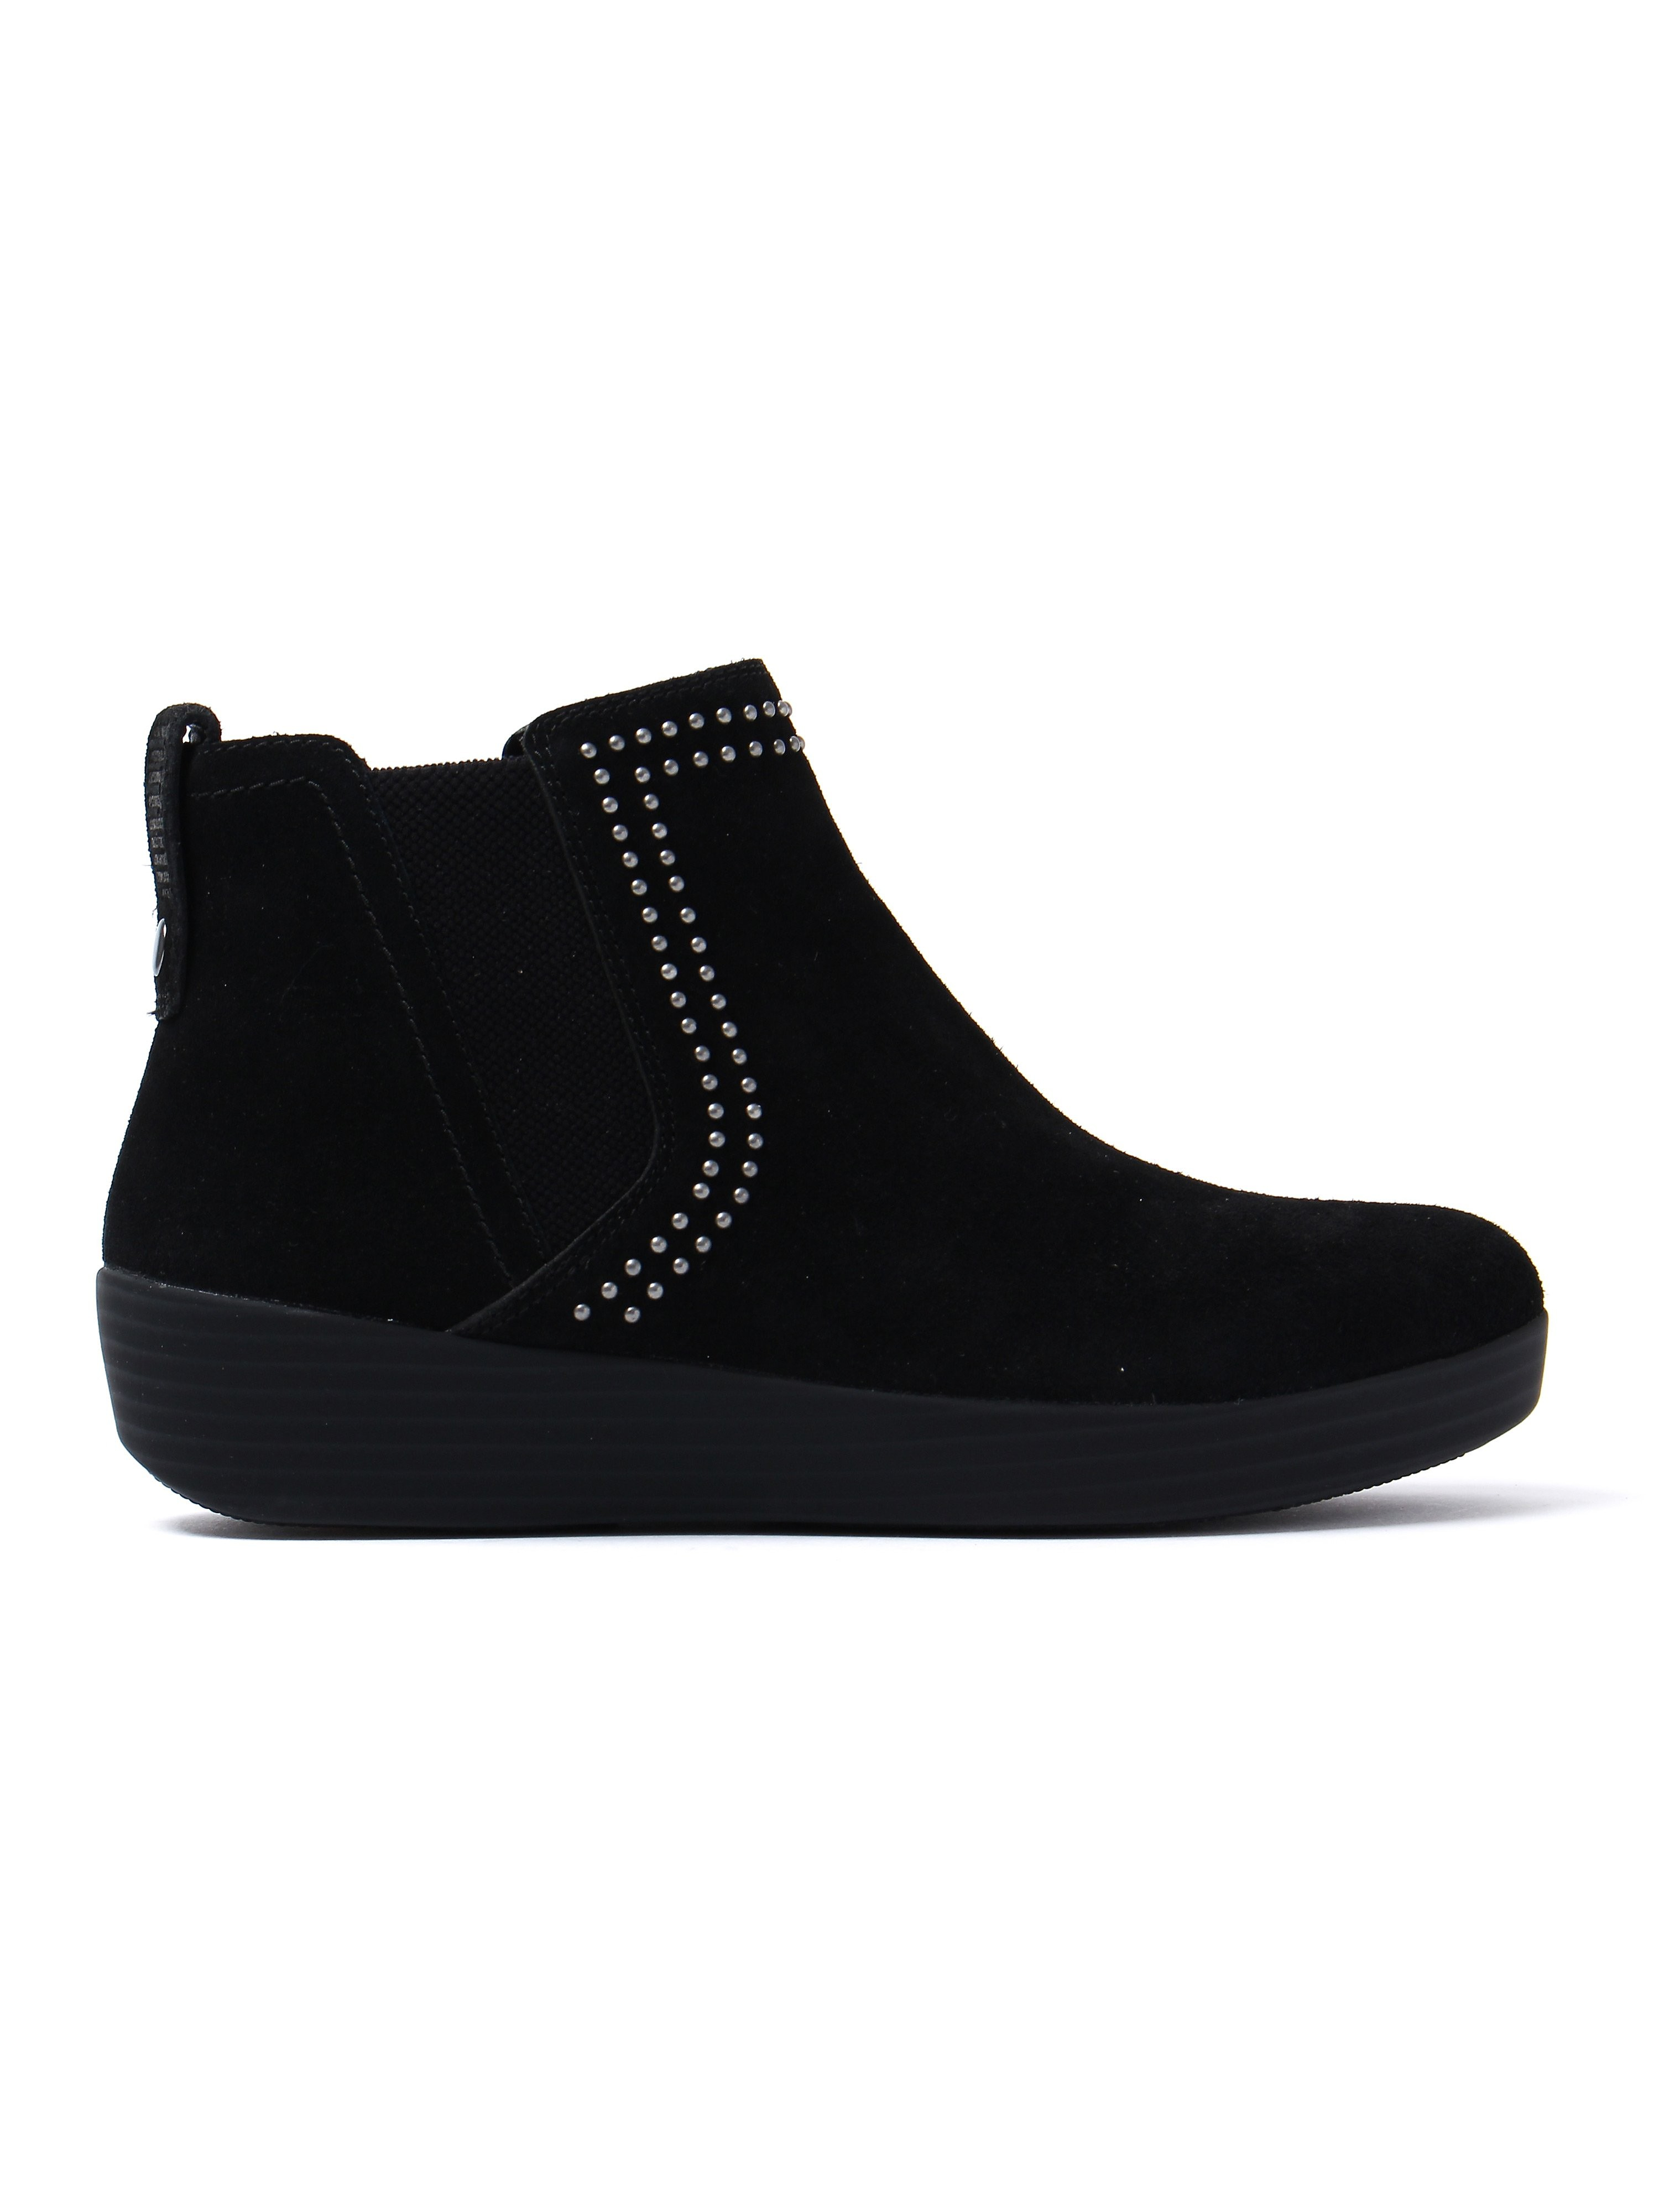 FitFlop Women's Superchelsea Studs Boots - Black Suede